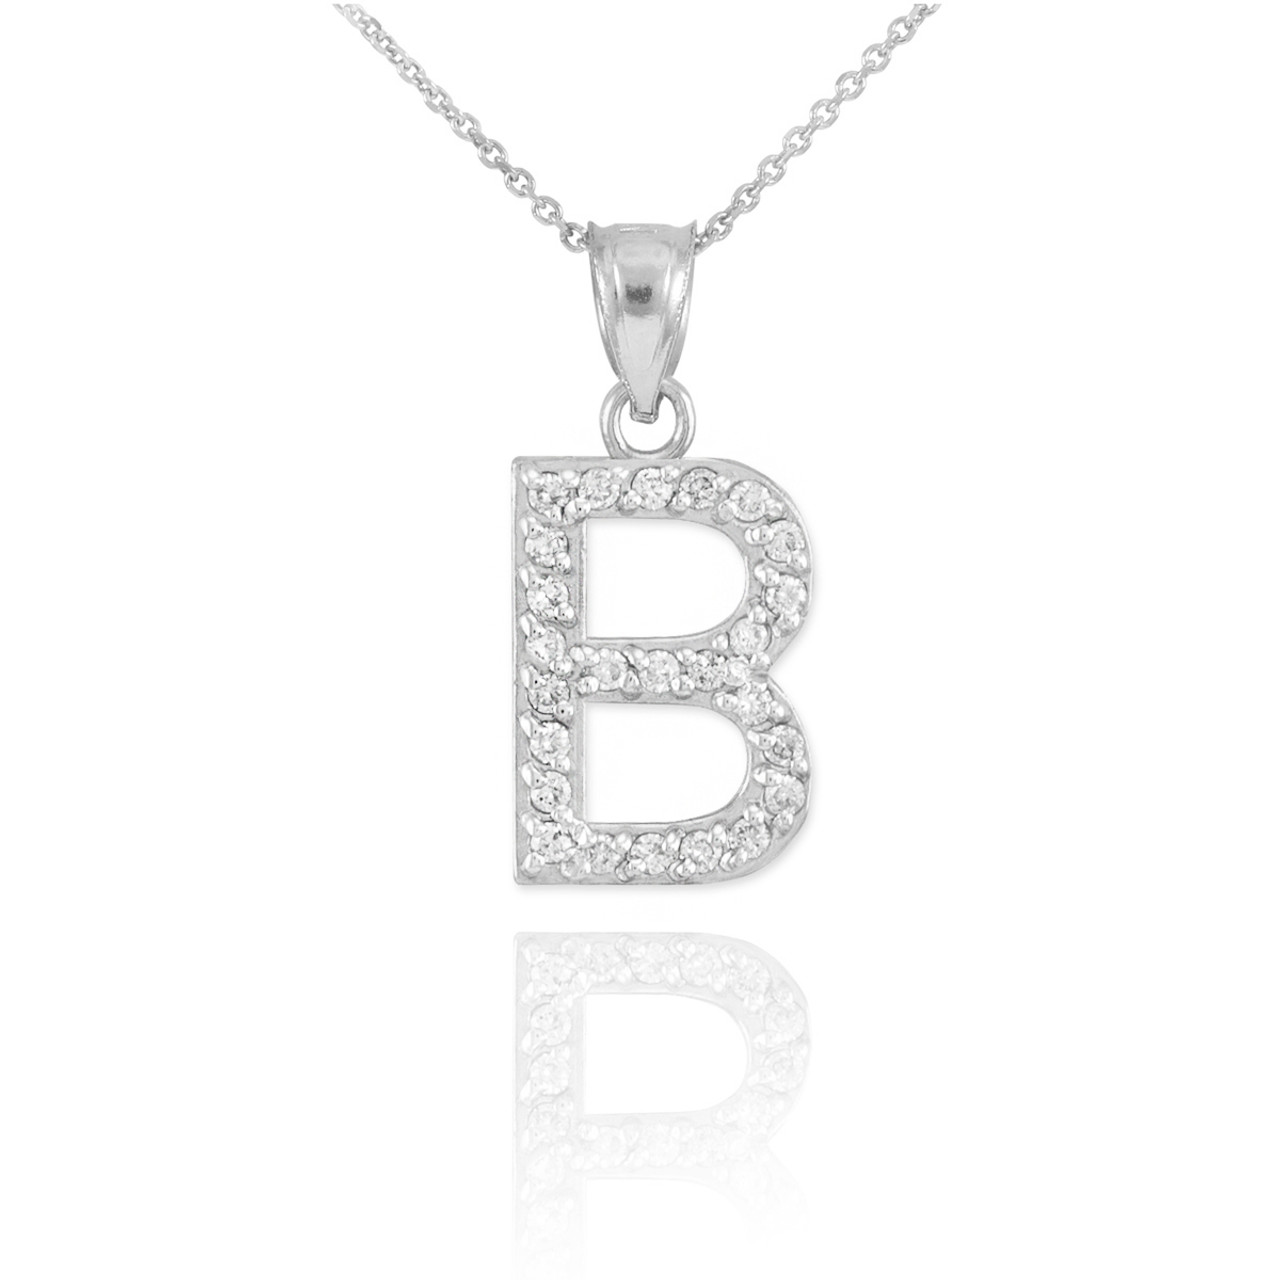 p initial necklace certified diamond w pendant ct charms alphabetical natural gold solid